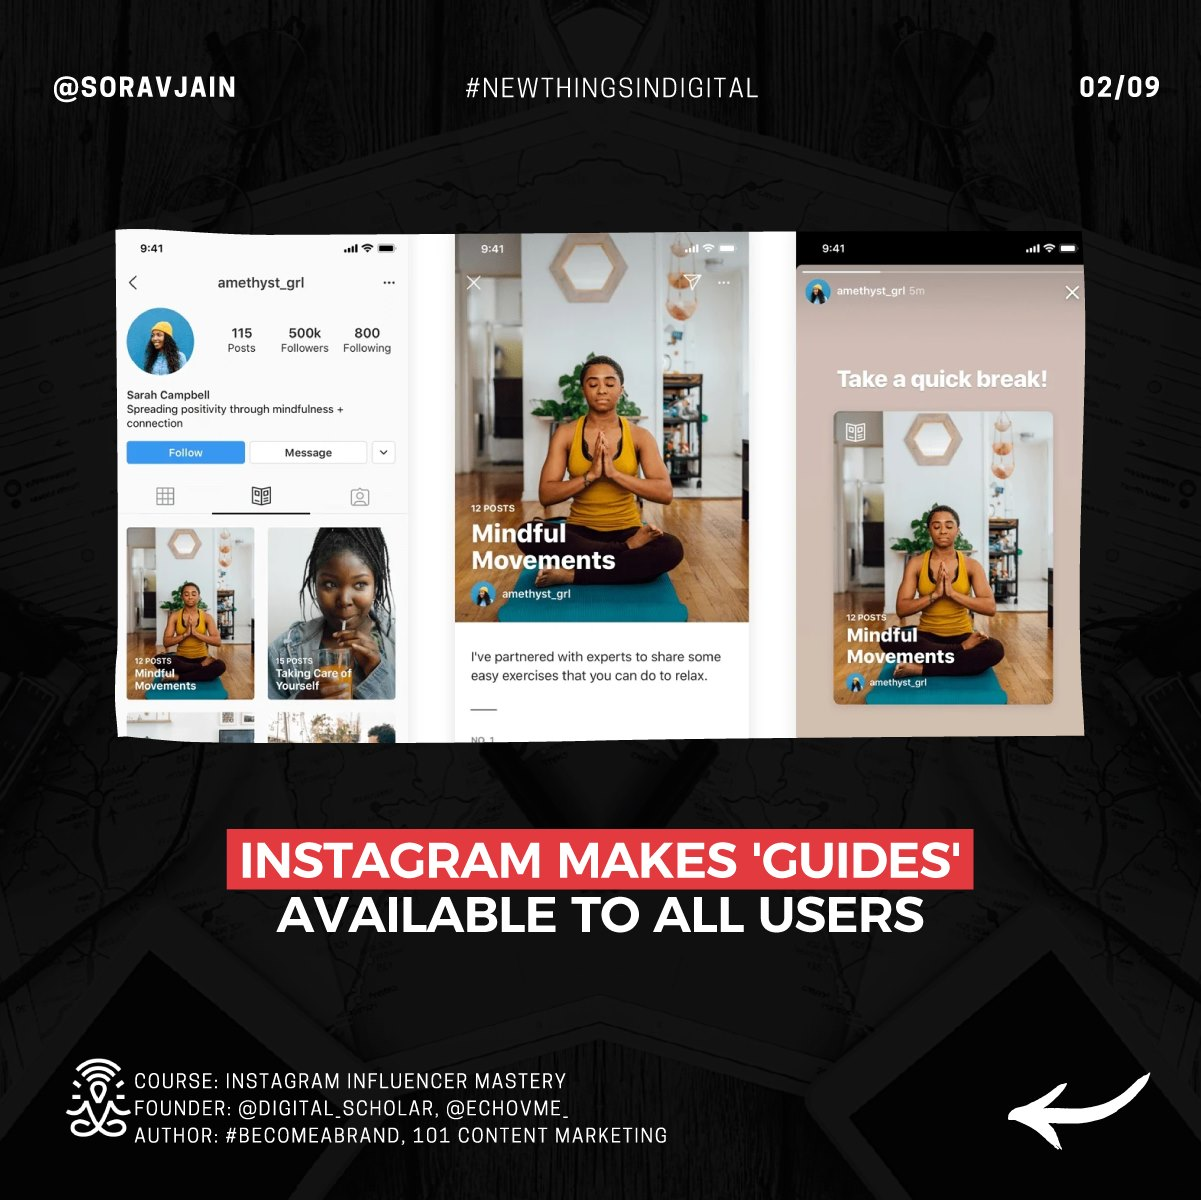 Instagram makes 'Guides' available to all users